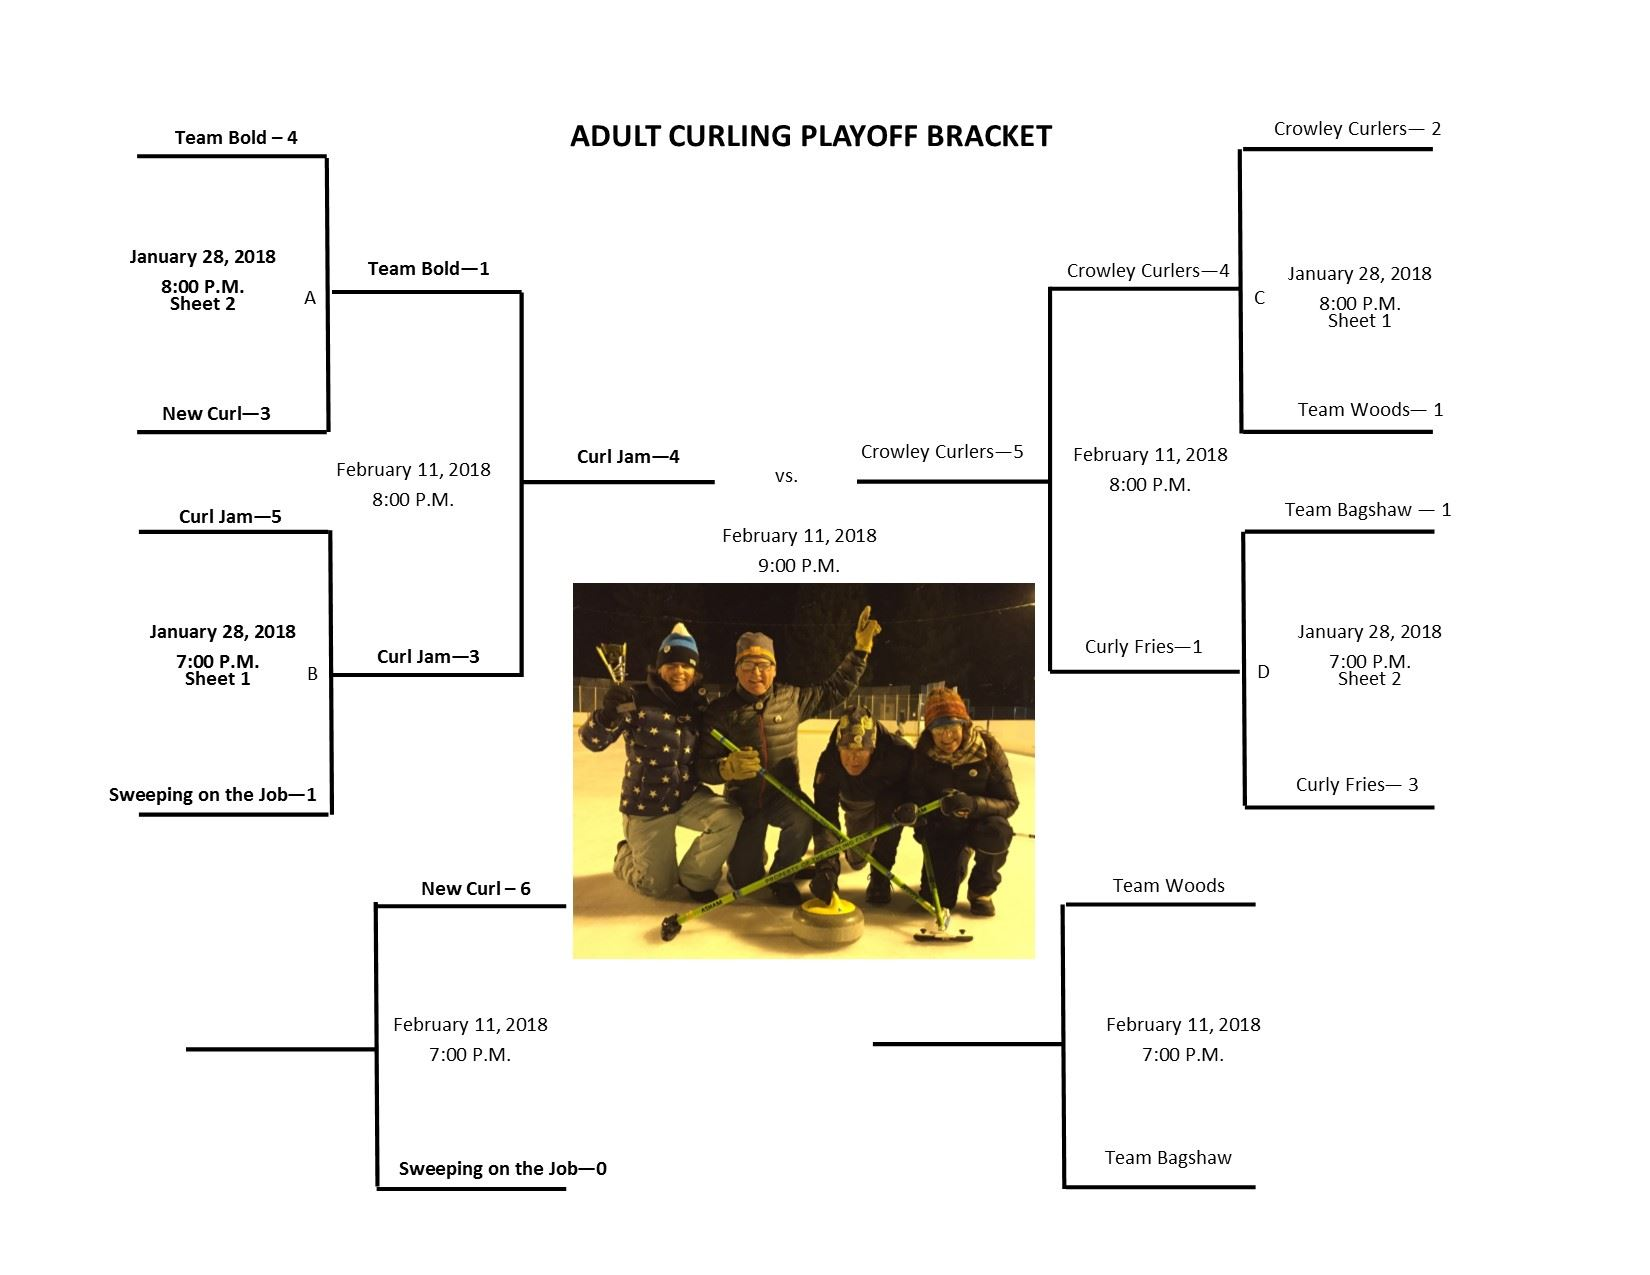 Playoff Bracket